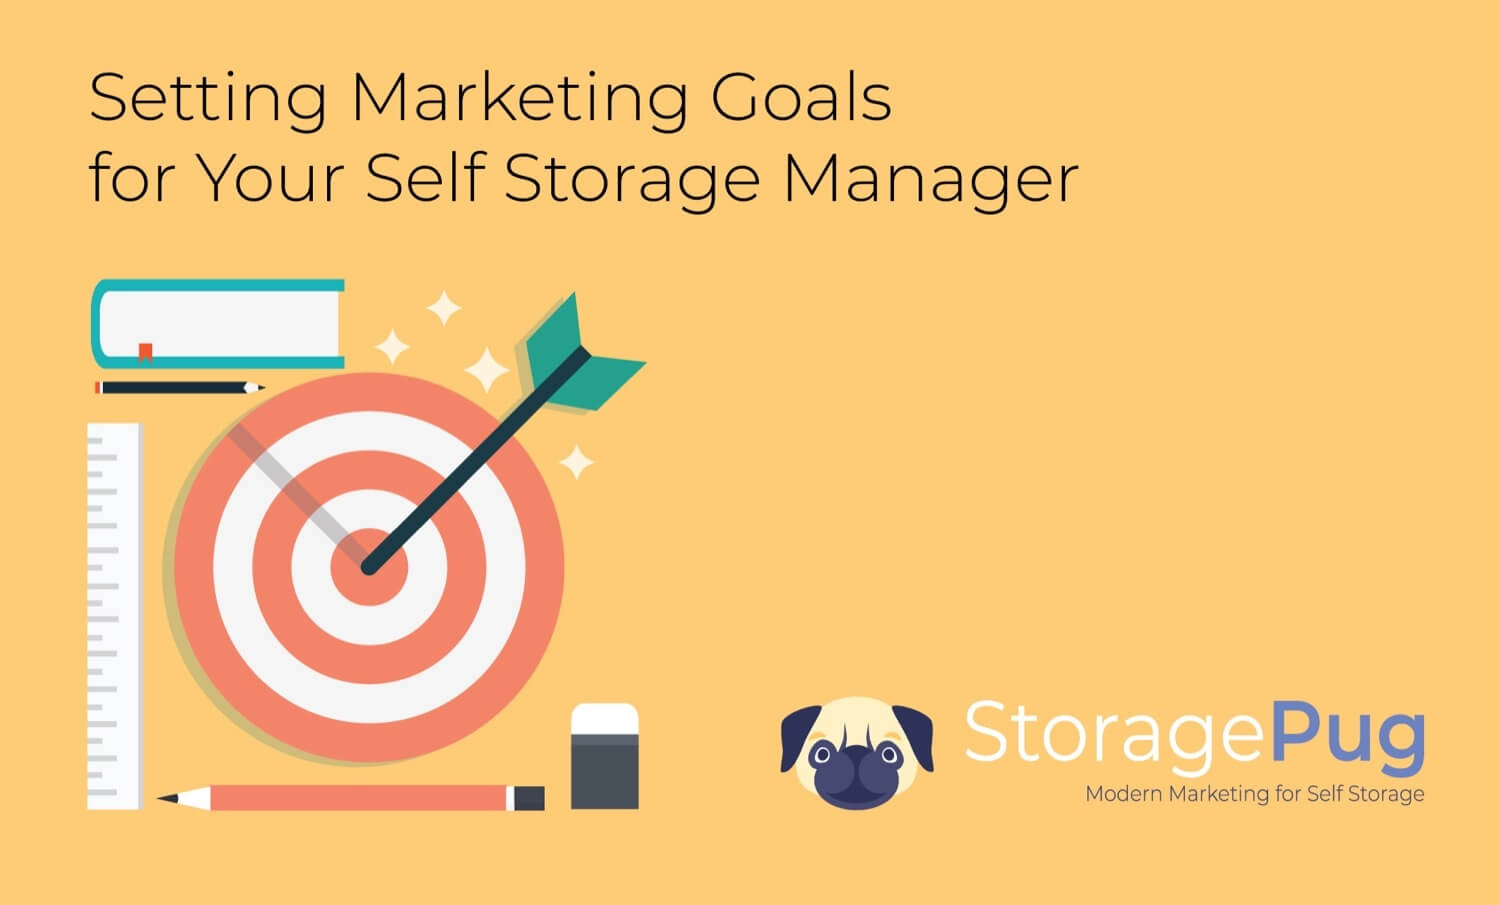 A successful self storage marketing strategy starts with your manager. Your manager is a salesperson! Set goals that challenge them to become a better manager.